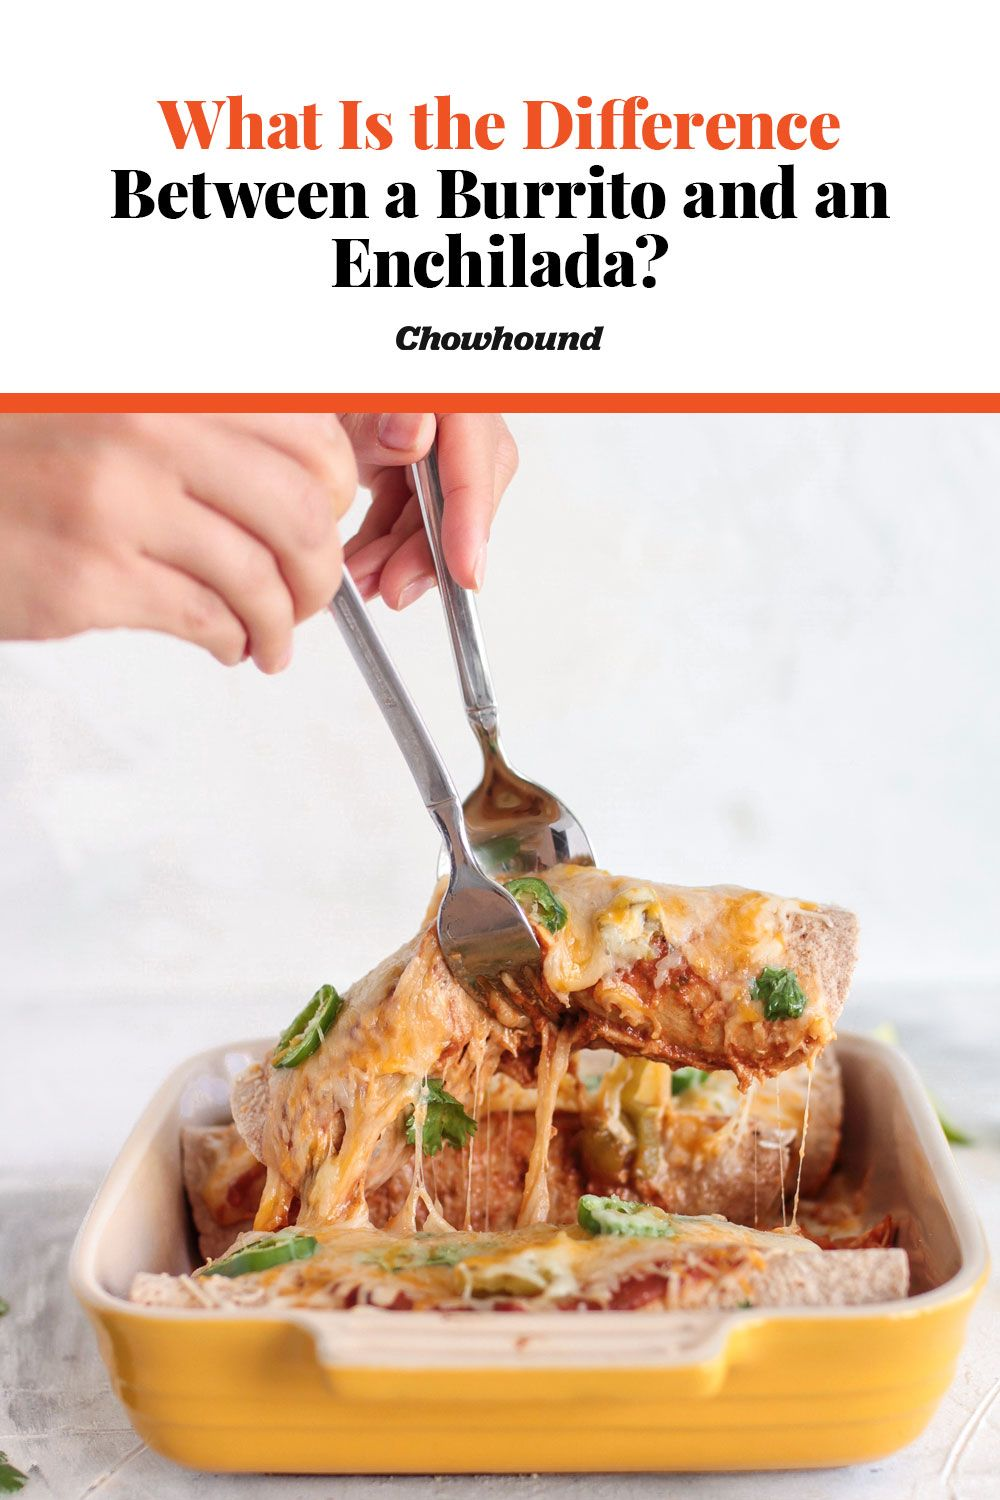 What Is the Difference Between a Burrito and an Enchilada